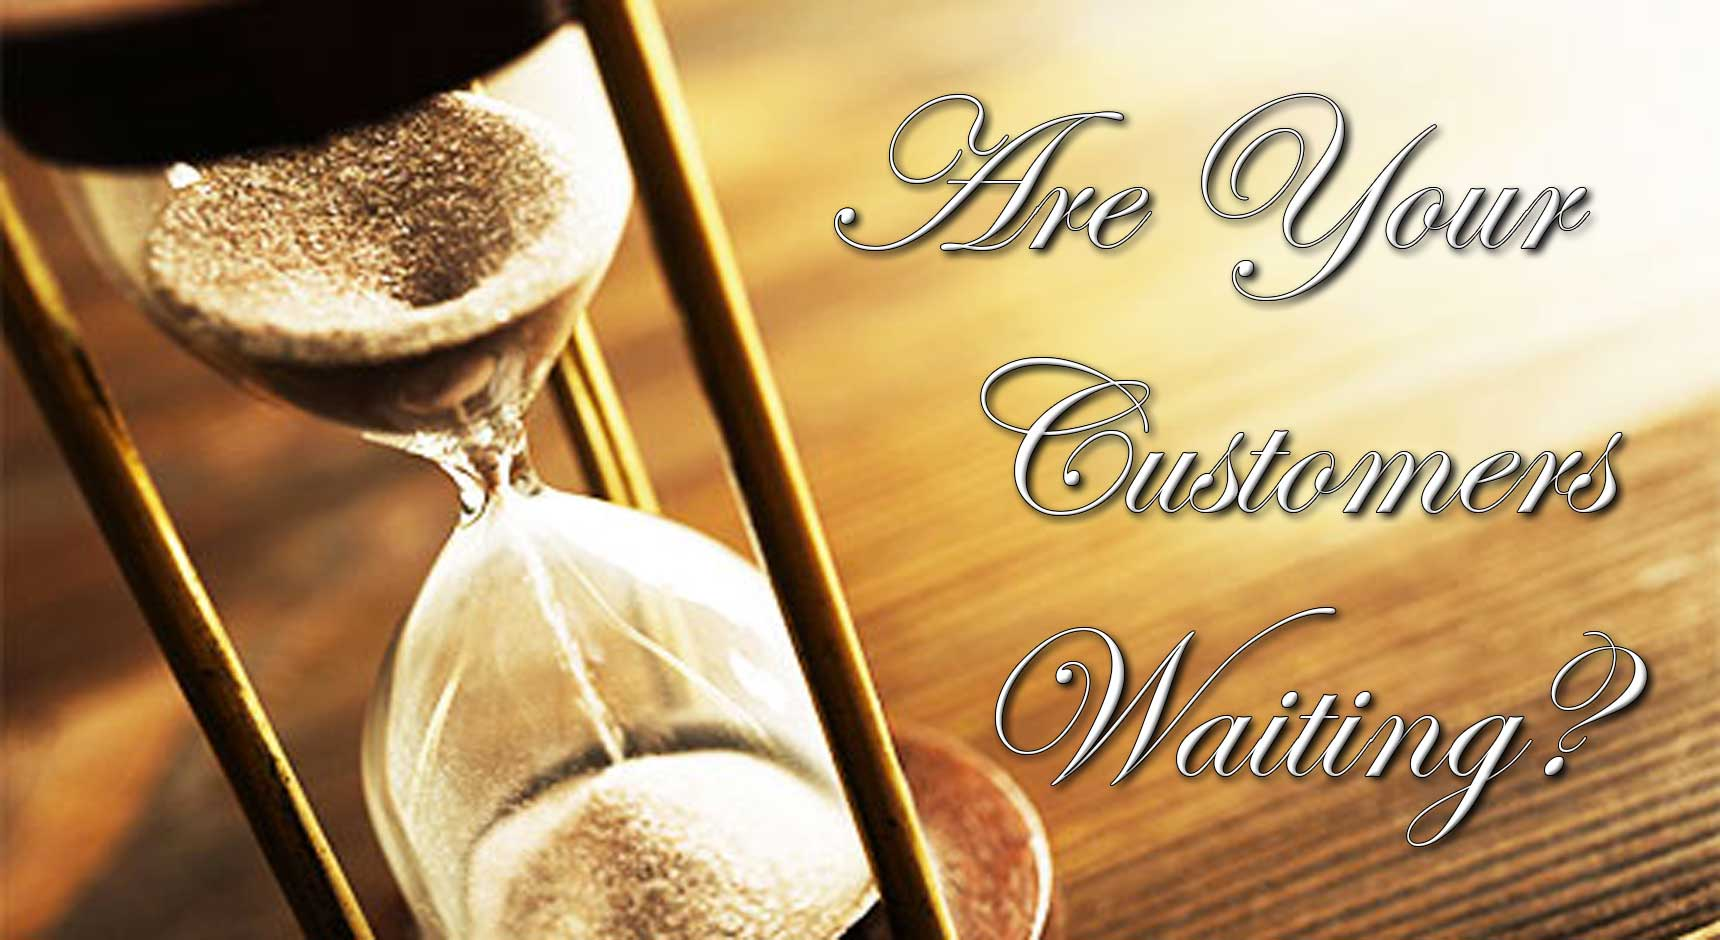 Are Your Customers Waiting